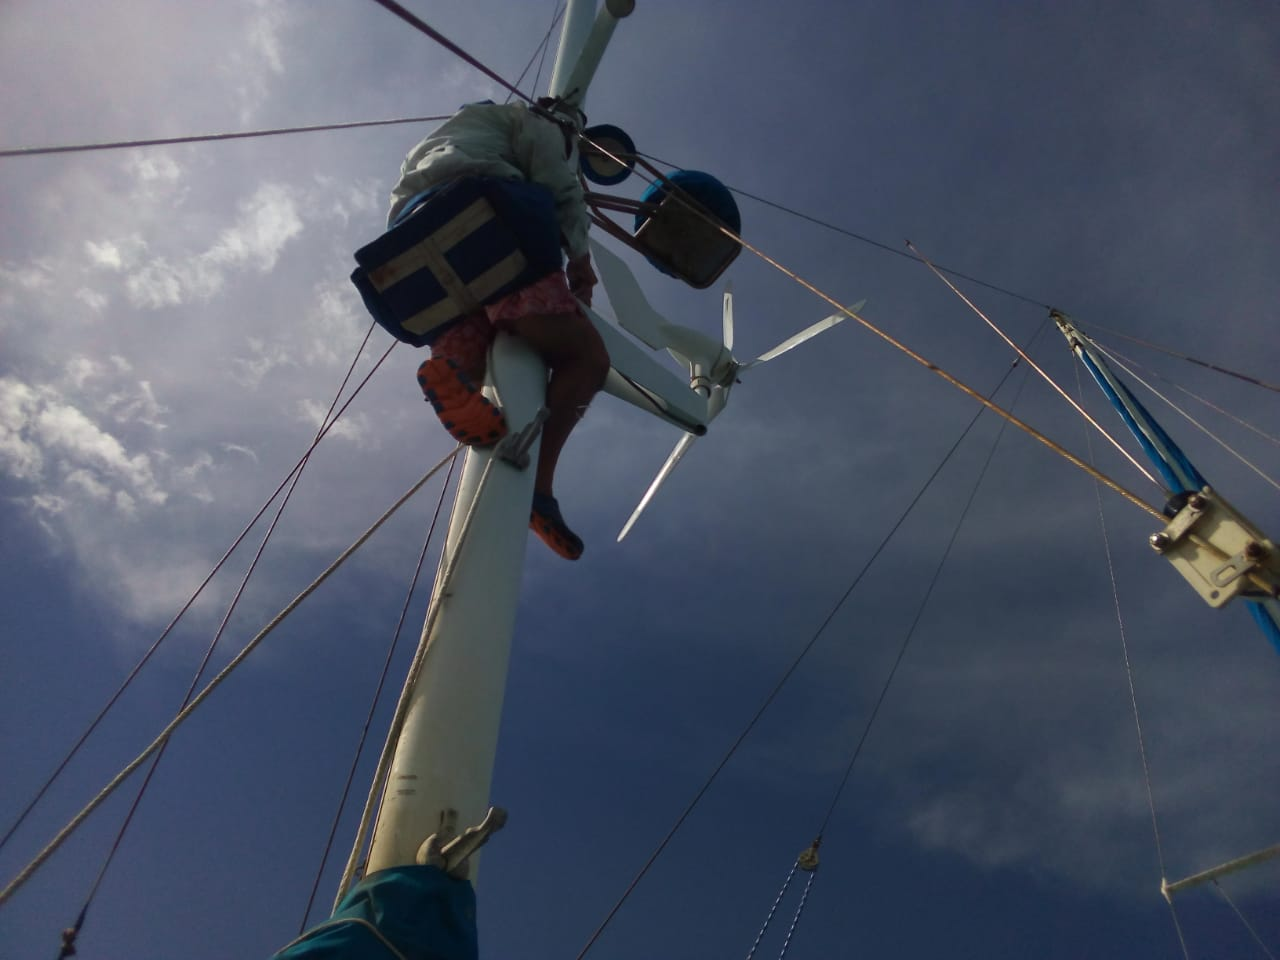 Breeze replacing blades on wind generator.jpg